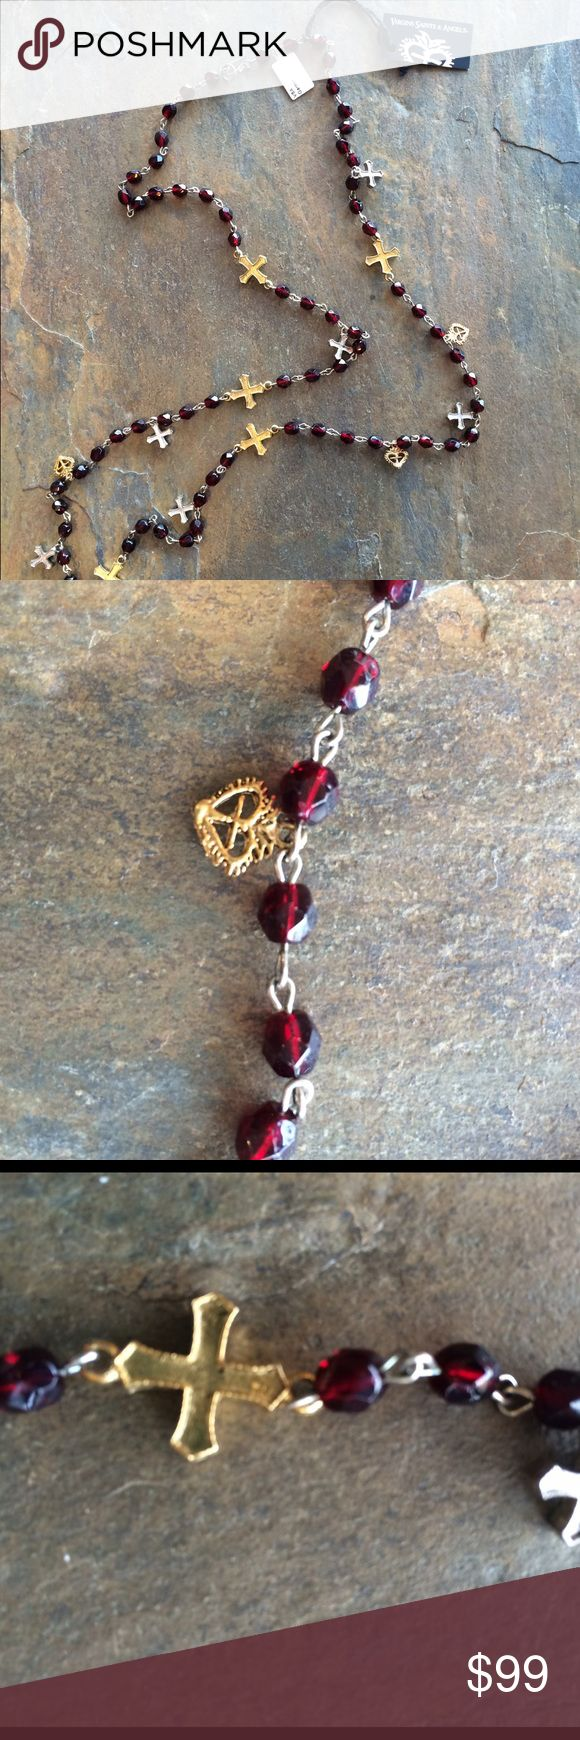 VSA long garnet necklace Virgin, Saints & Angels beautiful garnet necklace with silver & gold crosses.  New with tags.  Would look great alone or layered with other necklaces. Virgin Saints & Angels Jewelry Necklaces